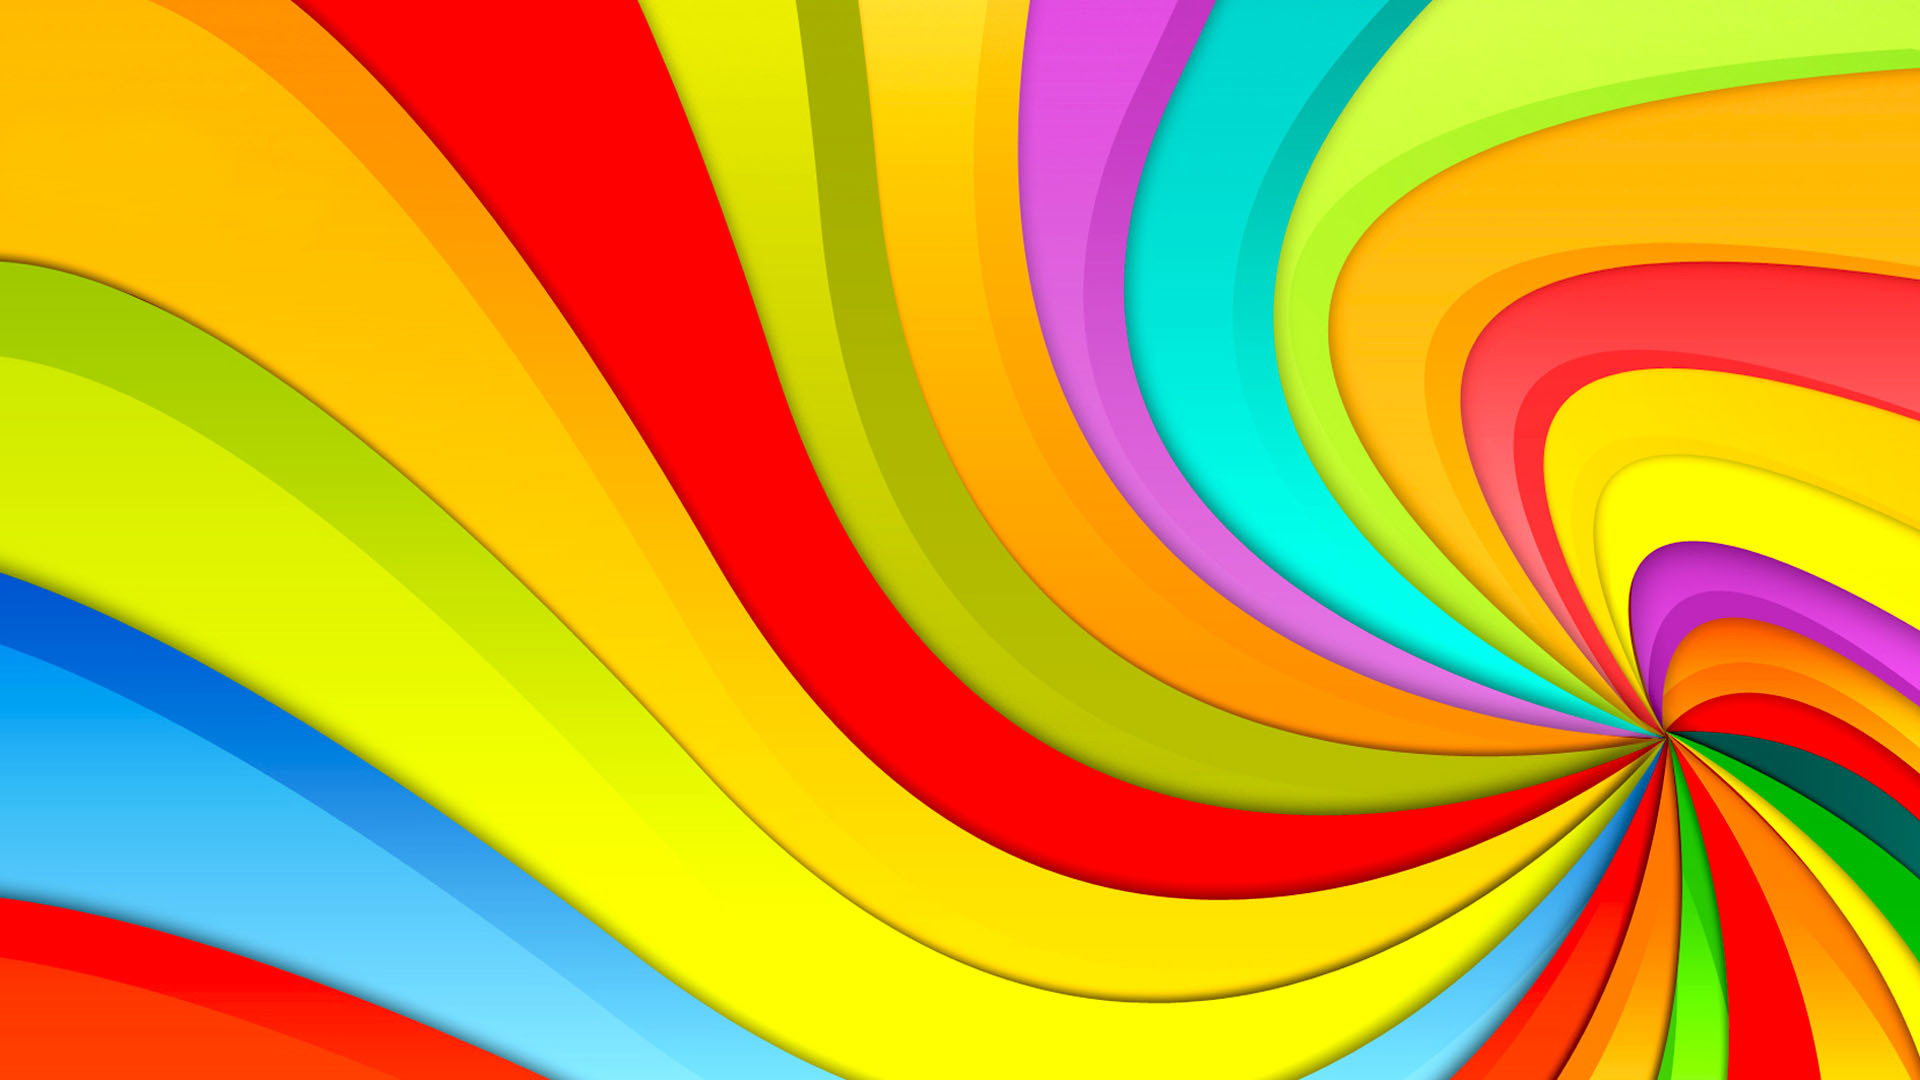 Colorful Desktop Backgrounds - Bright Colorful Backgrounds - HD Wallpaper